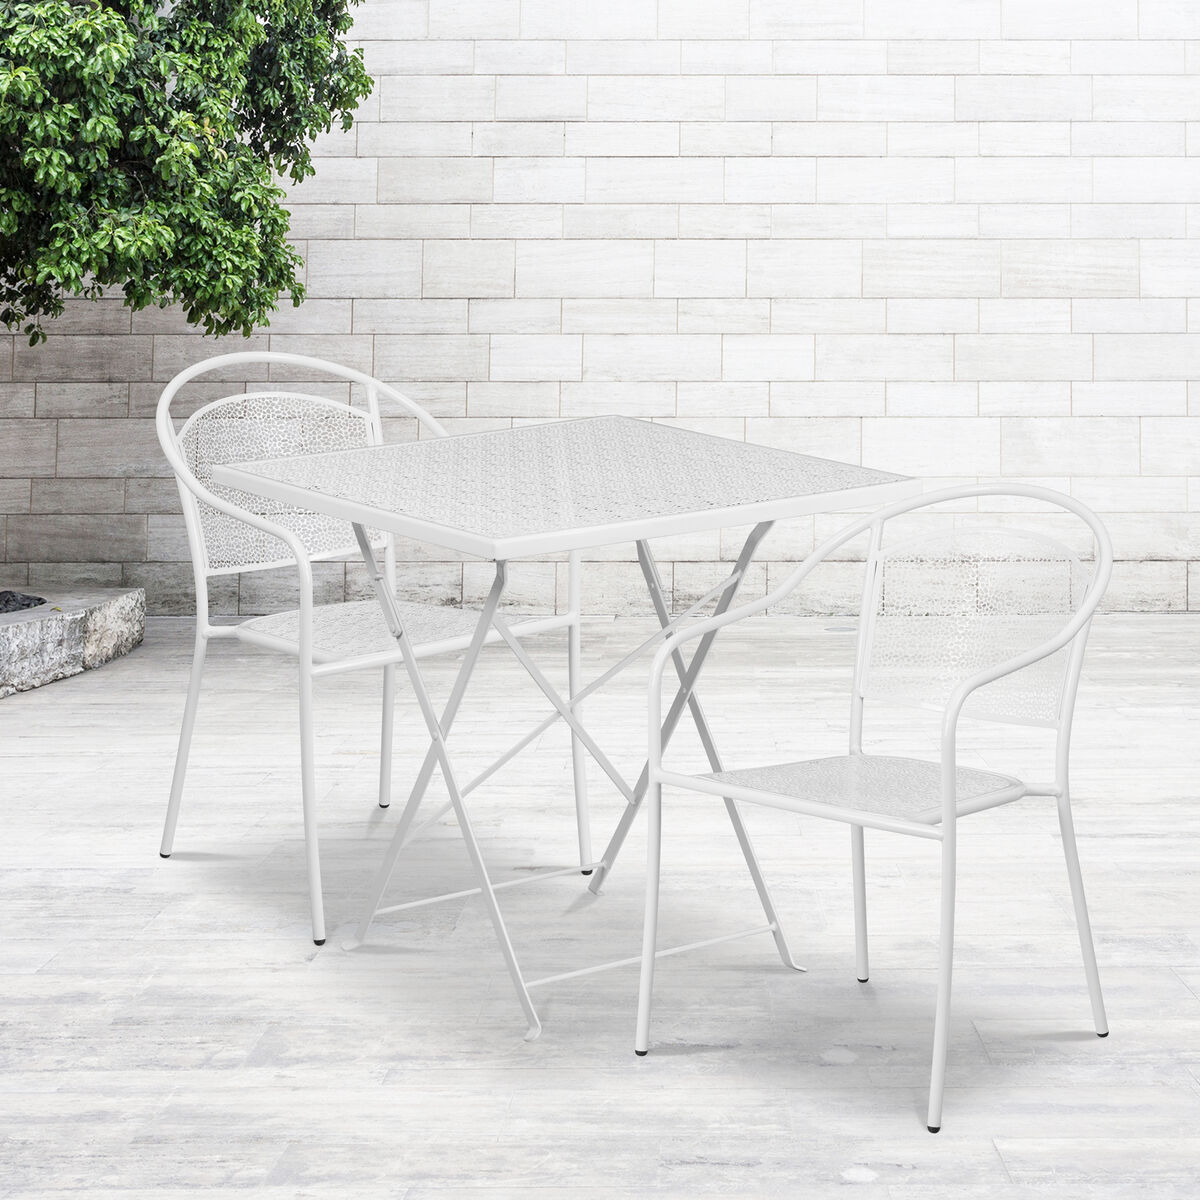 Excellent Commercial Grade 28 Square White Indoor Outdoor Steel Folding Patio Table Set With 2 Round Back Chairs Pdpeps Interior Chair Design Pdpepsorg